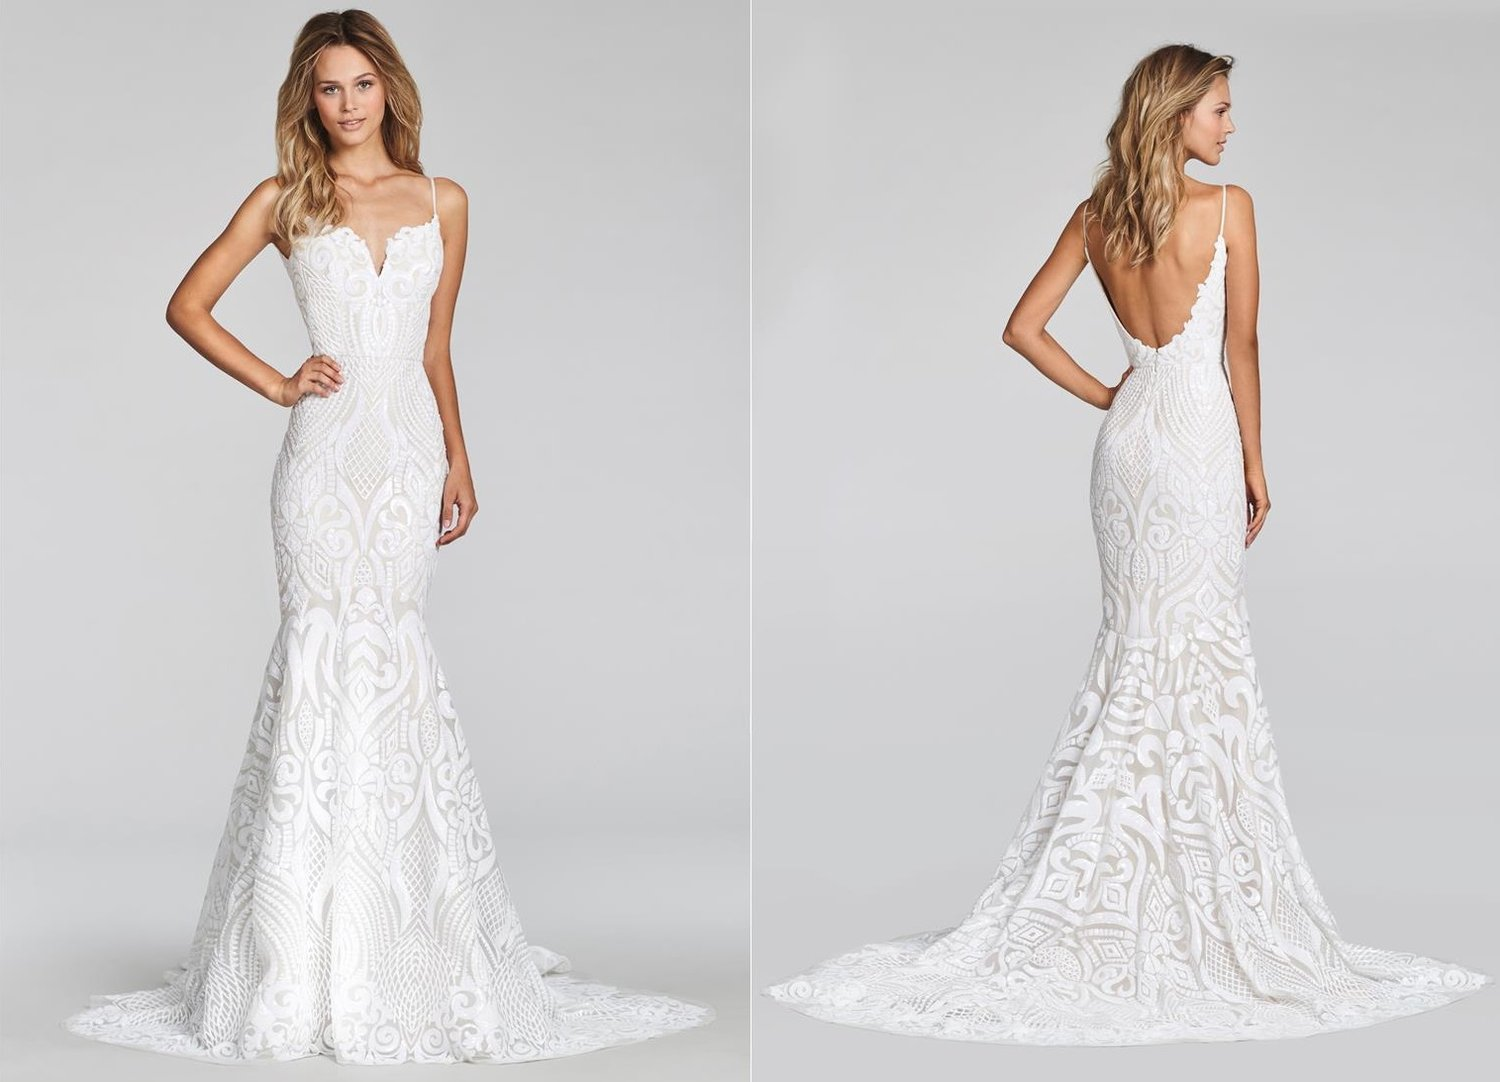 Hayley paige styles gowns for the ultimate revenge body for Hayley paige wedding dress prices